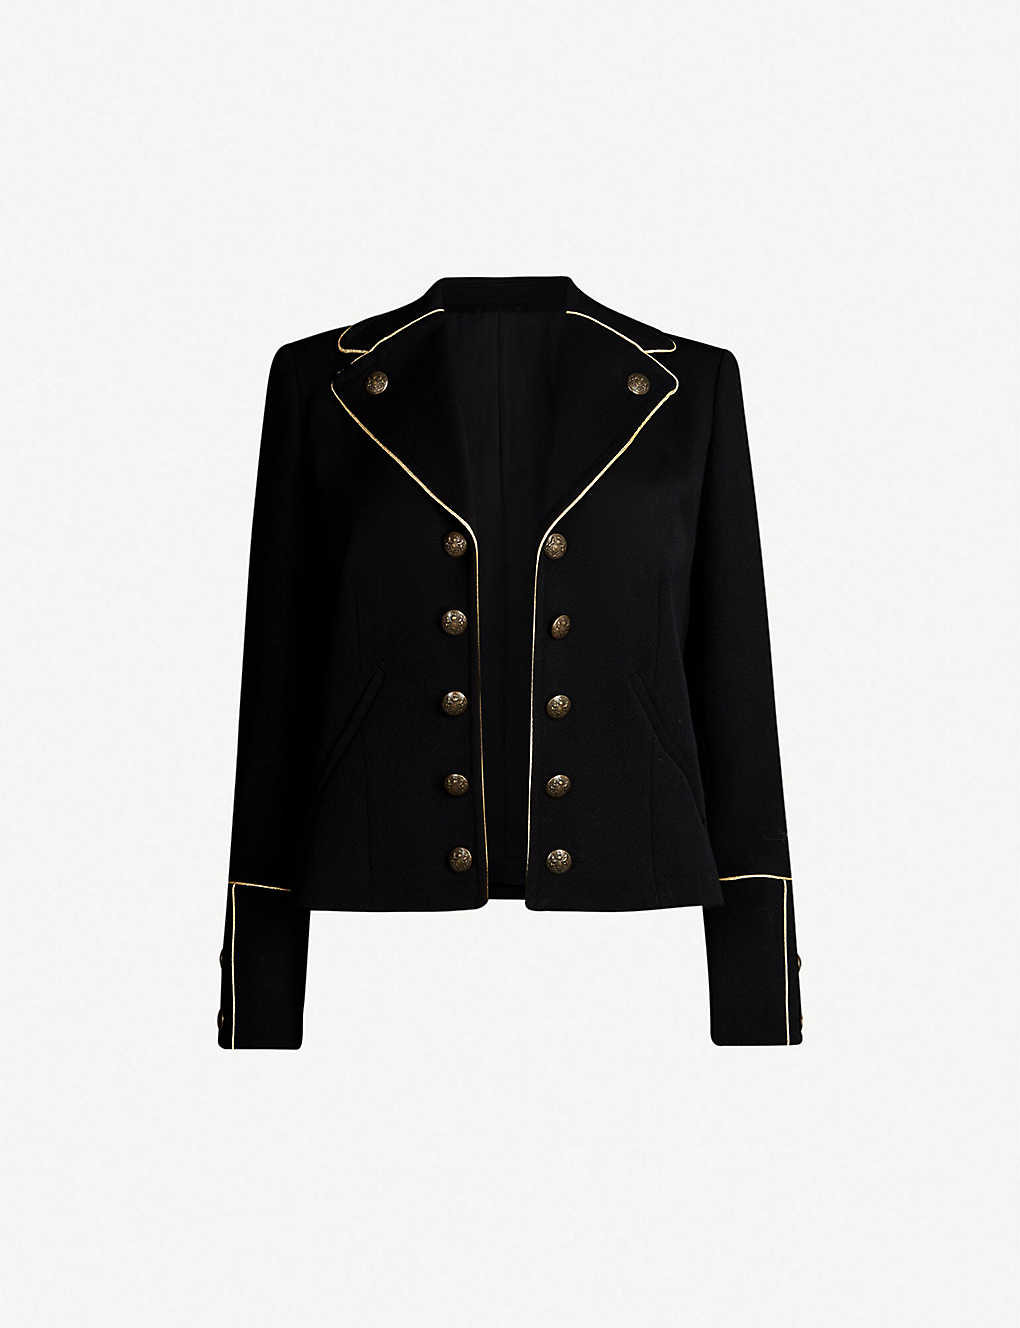 0f1aeaa25f3 THE KOOPLES - Piped-trim woven blazer | Selfridges.com